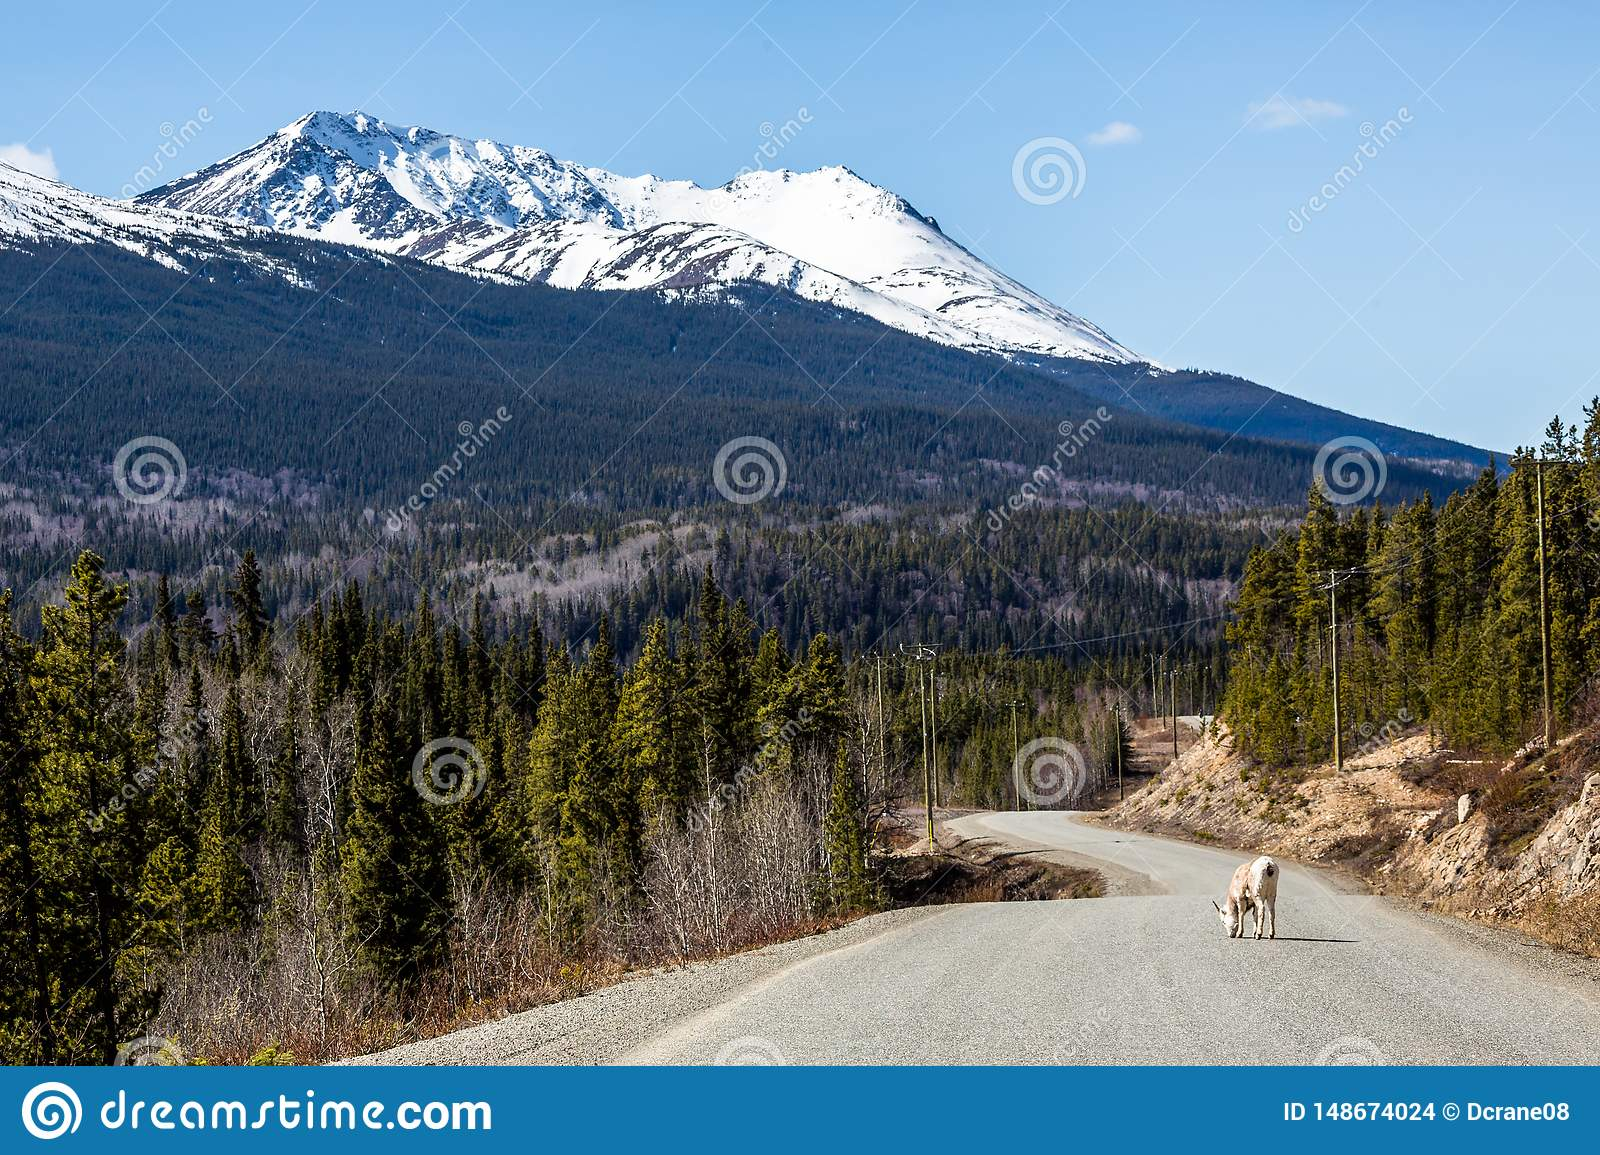 Stone Sheep ewe licking salt from the Cassiar Highway paved road